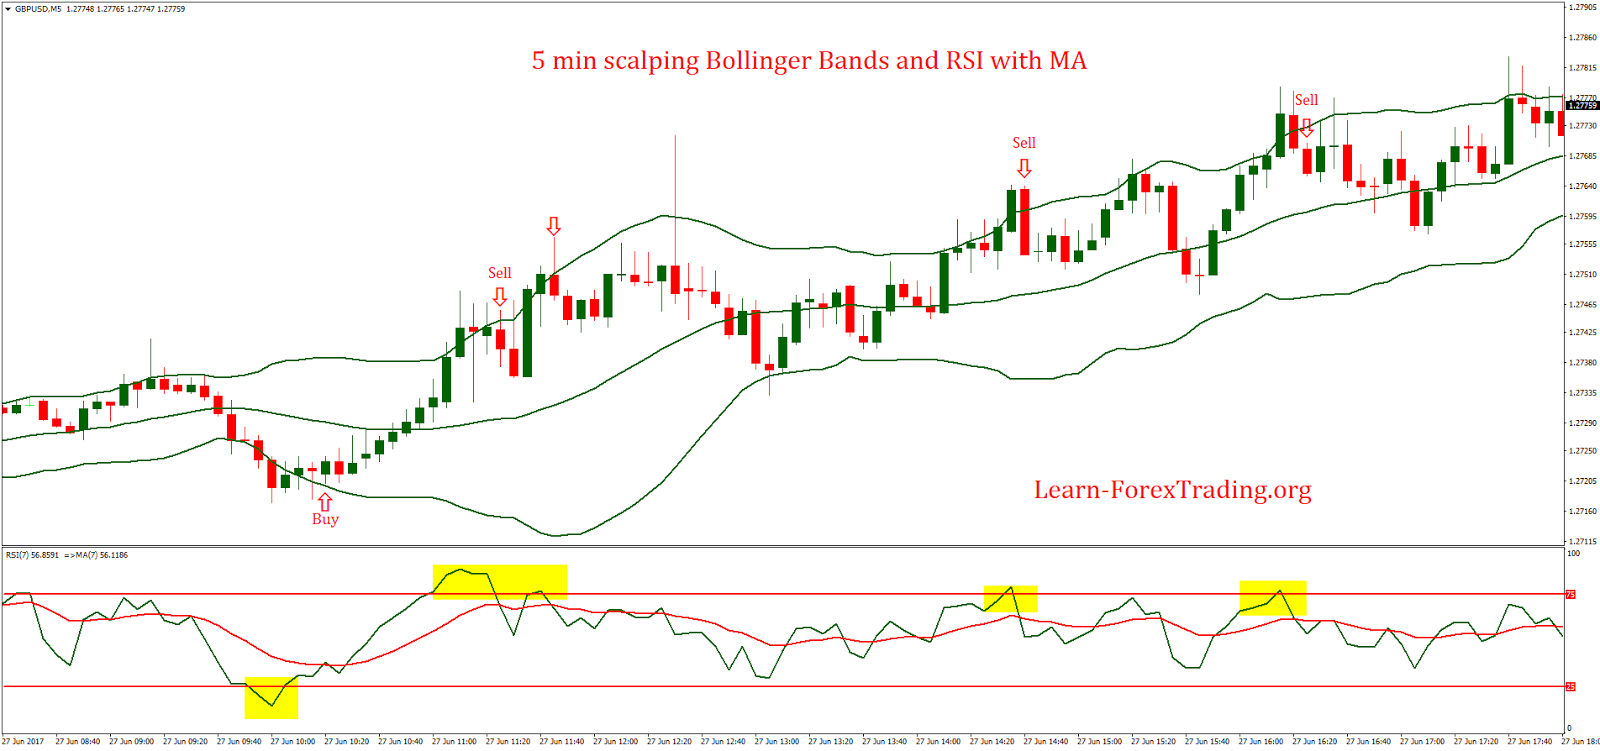 Double rsi strategy